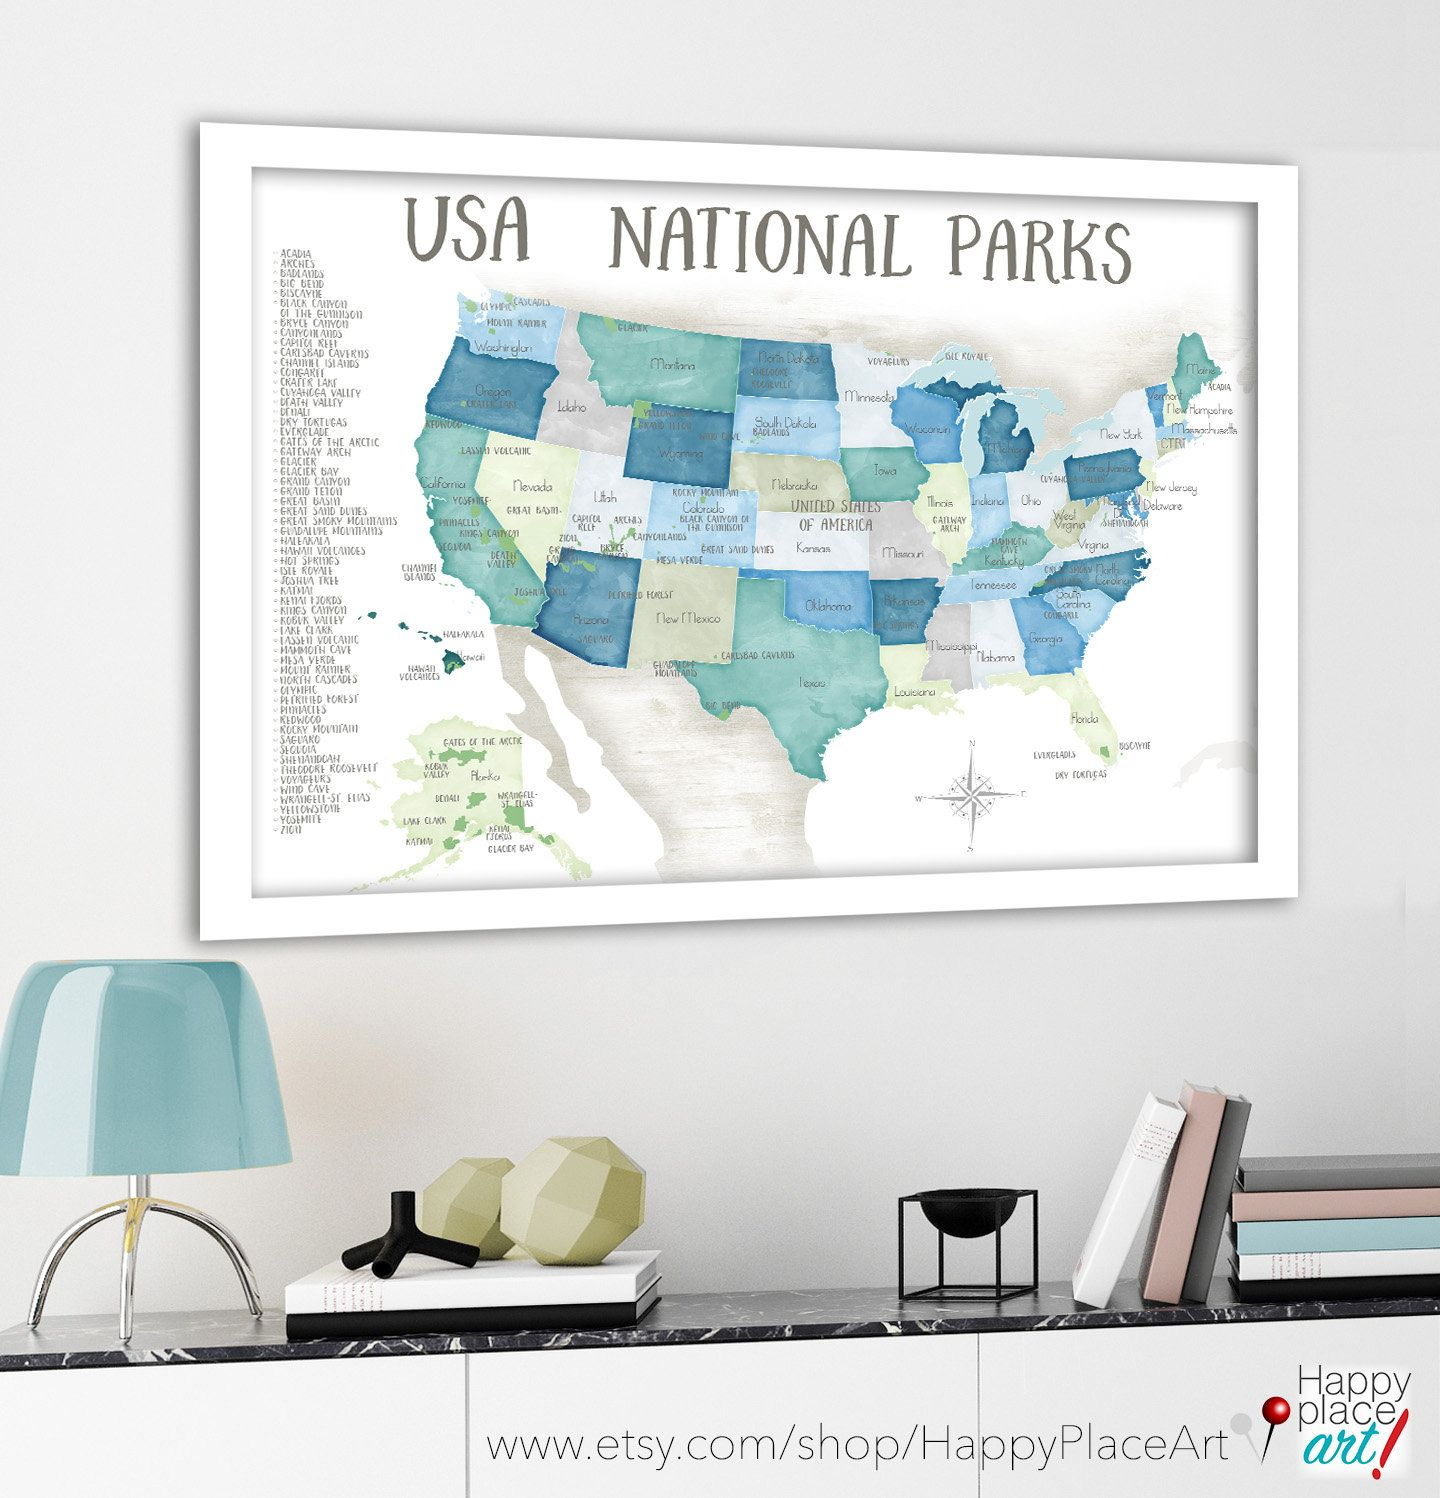 National Park Checklist And Map For Pins Usa Push Pin Map Foam Mounted Gift For Hiker Or Nature Lover Adventure Awaits Us Map For Kids Happyplaceartma En 2020 Motif